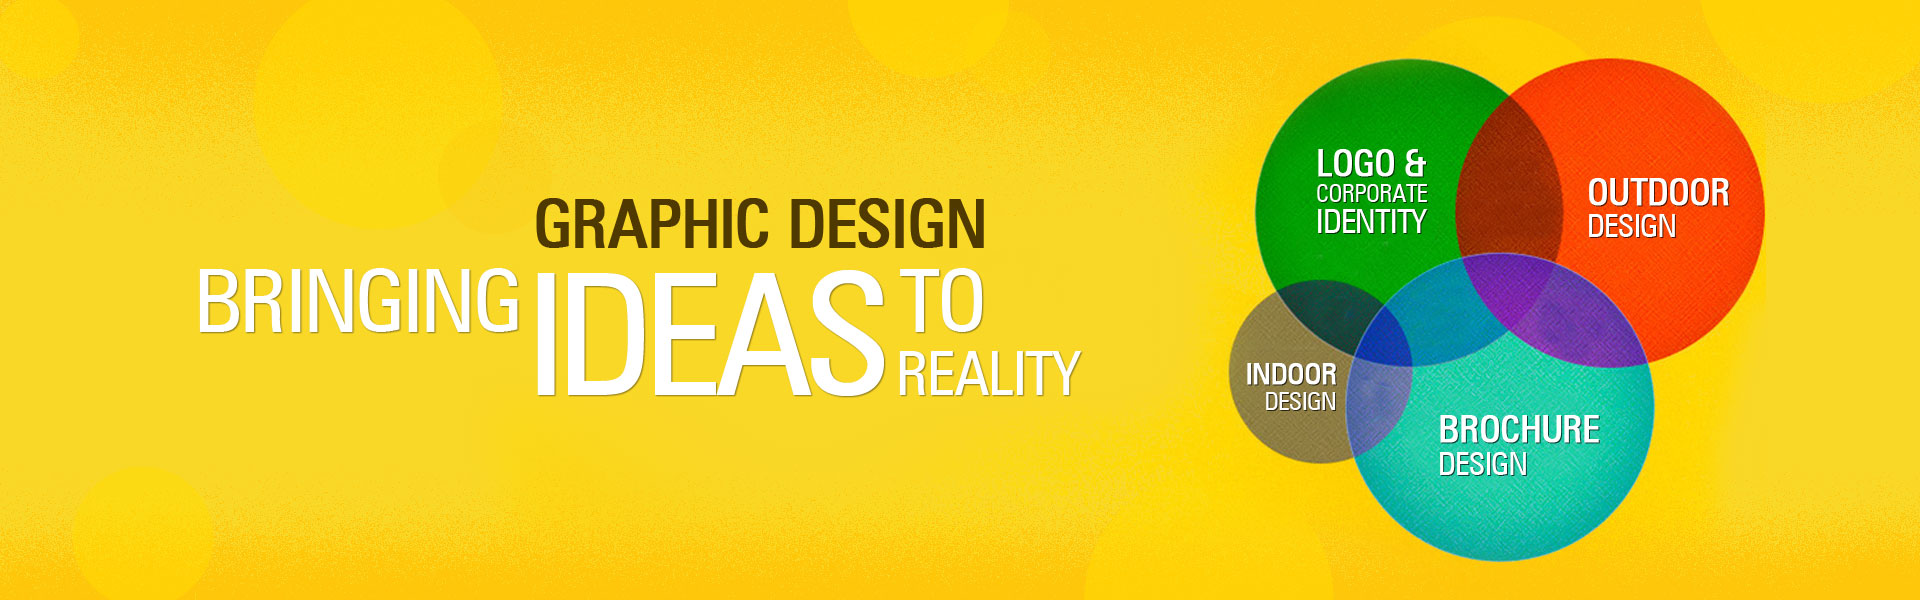 4 Reasons why Graphic Design Service is a Must Have for a Business